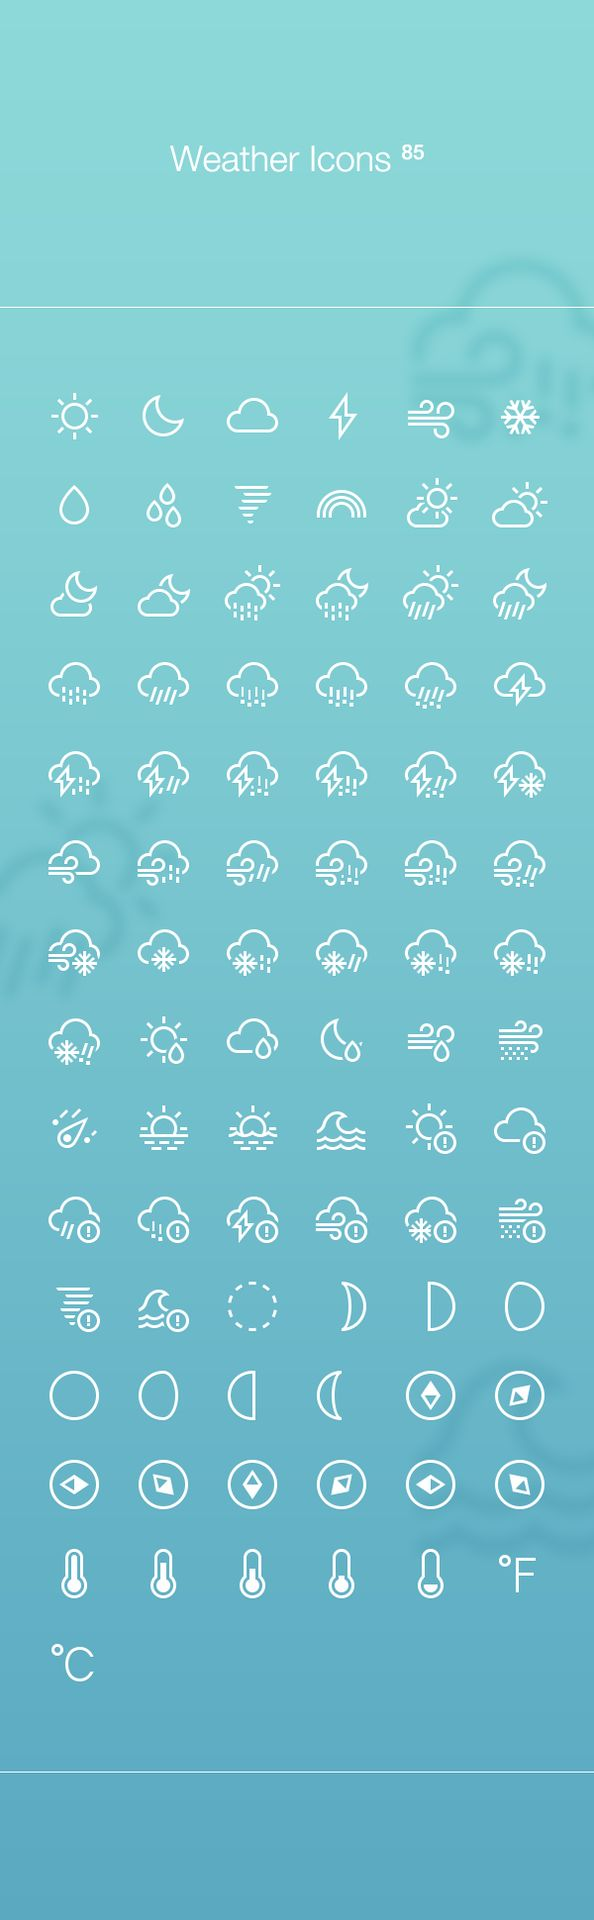 KDS Icons & Logos Inspitarions Board by Web Design Freebies / Find us in www.kds.com.ar or Facebook/KDSARG and Twitter /KDSARG / Tags: #icons #logos #design